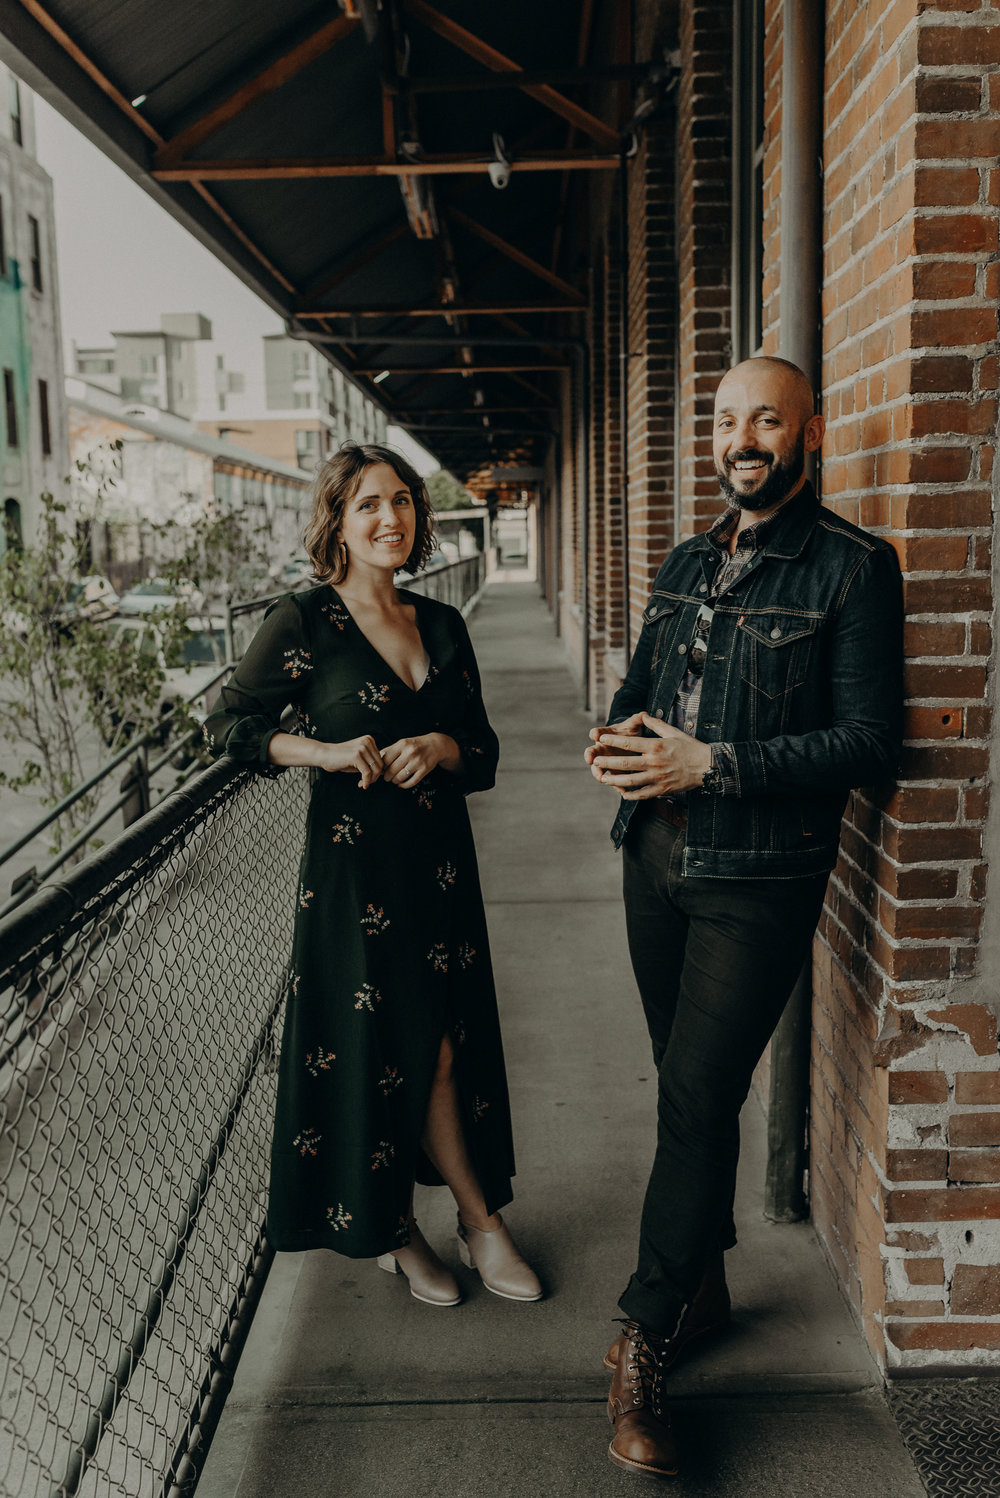 Isaiah + Taylor Photography - Downtown Los Angeles Arts District Engagement03.jpg